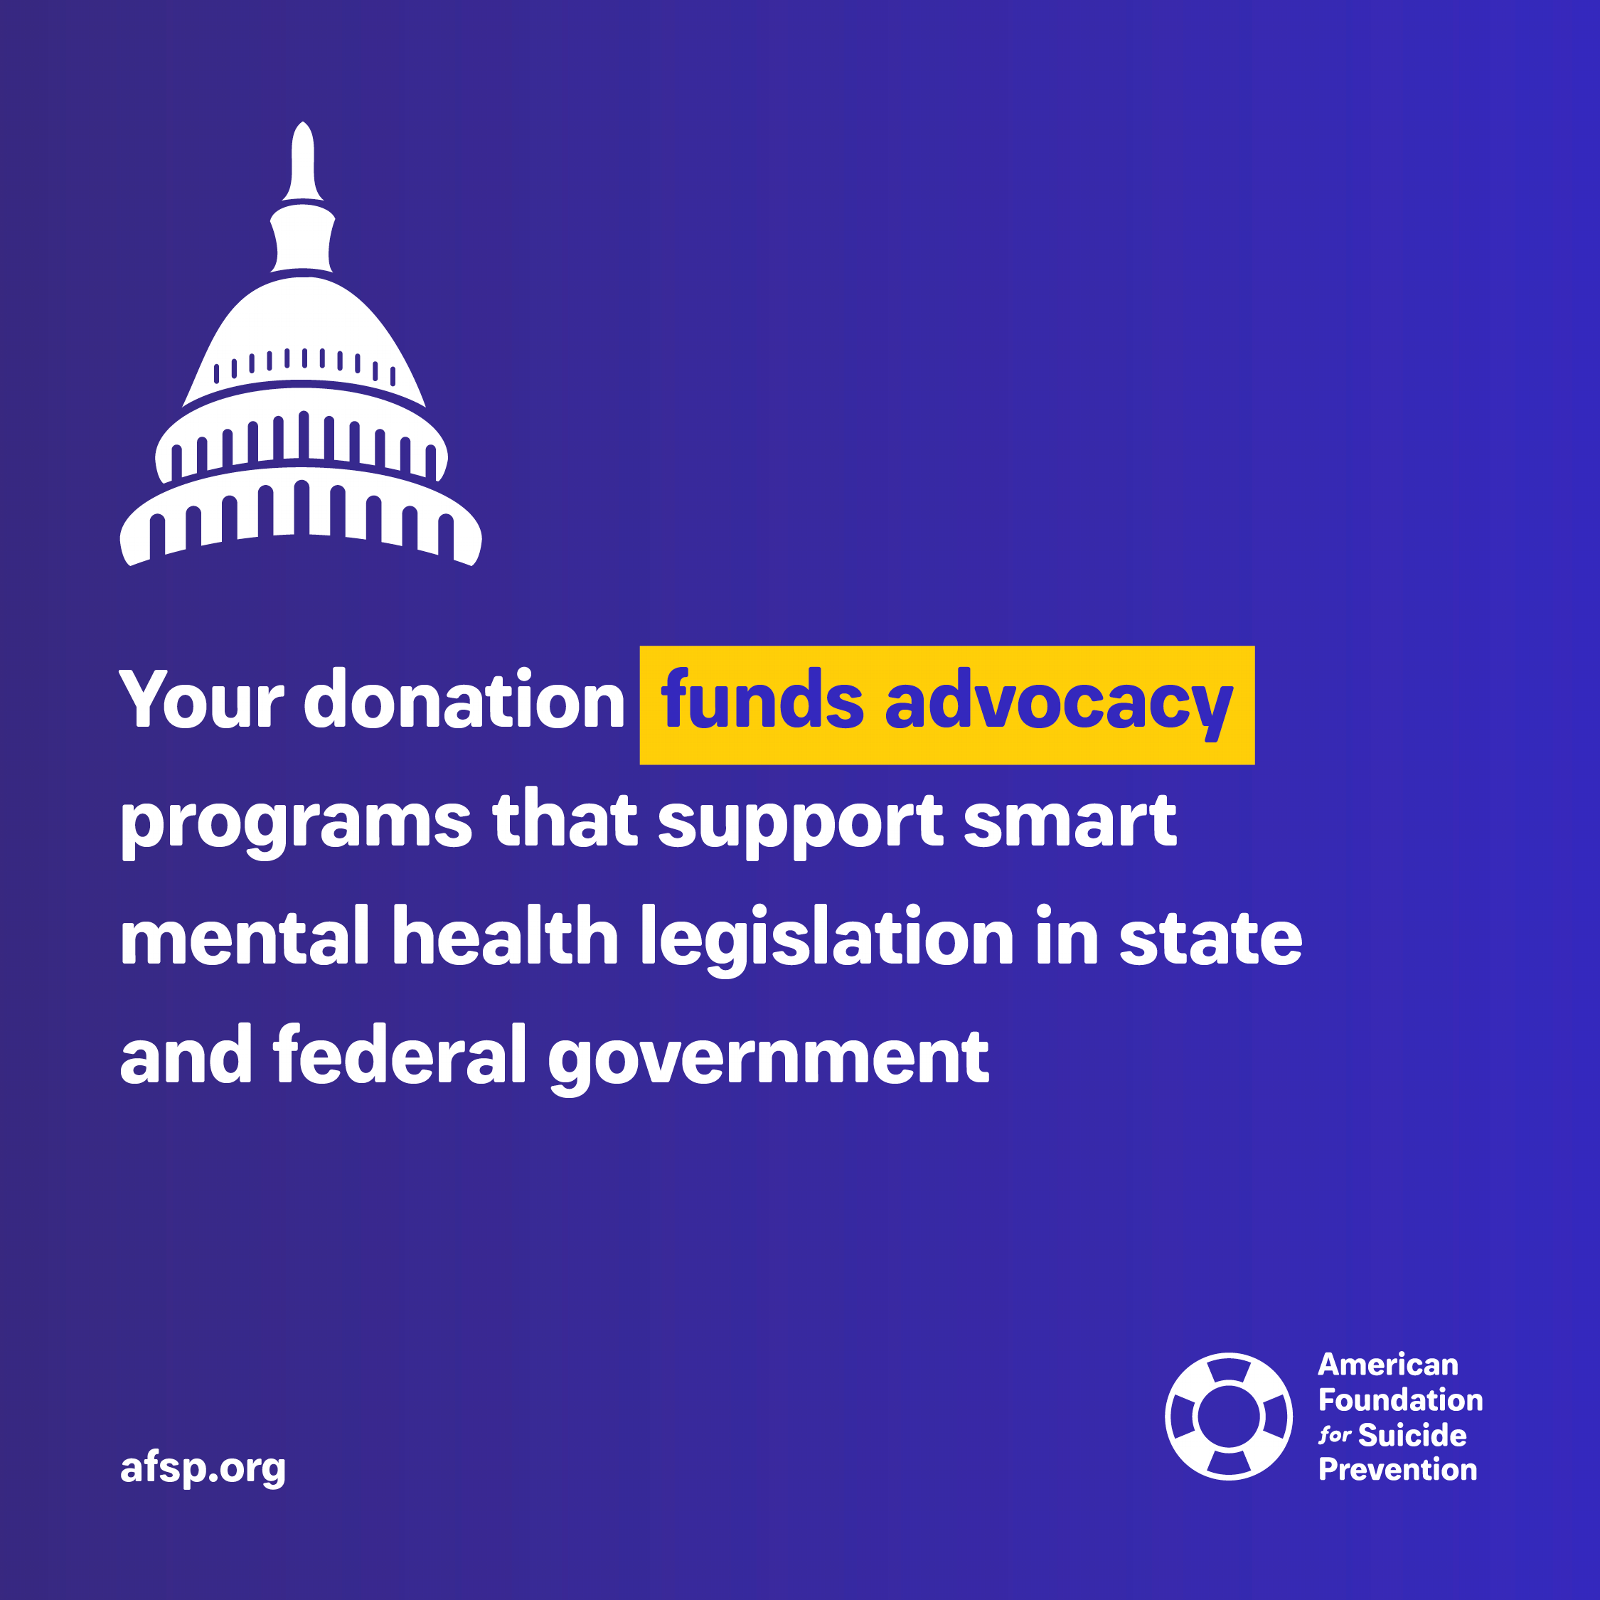 Your donation funds advocacy programs that support smart mental health legislation in state and federal government.